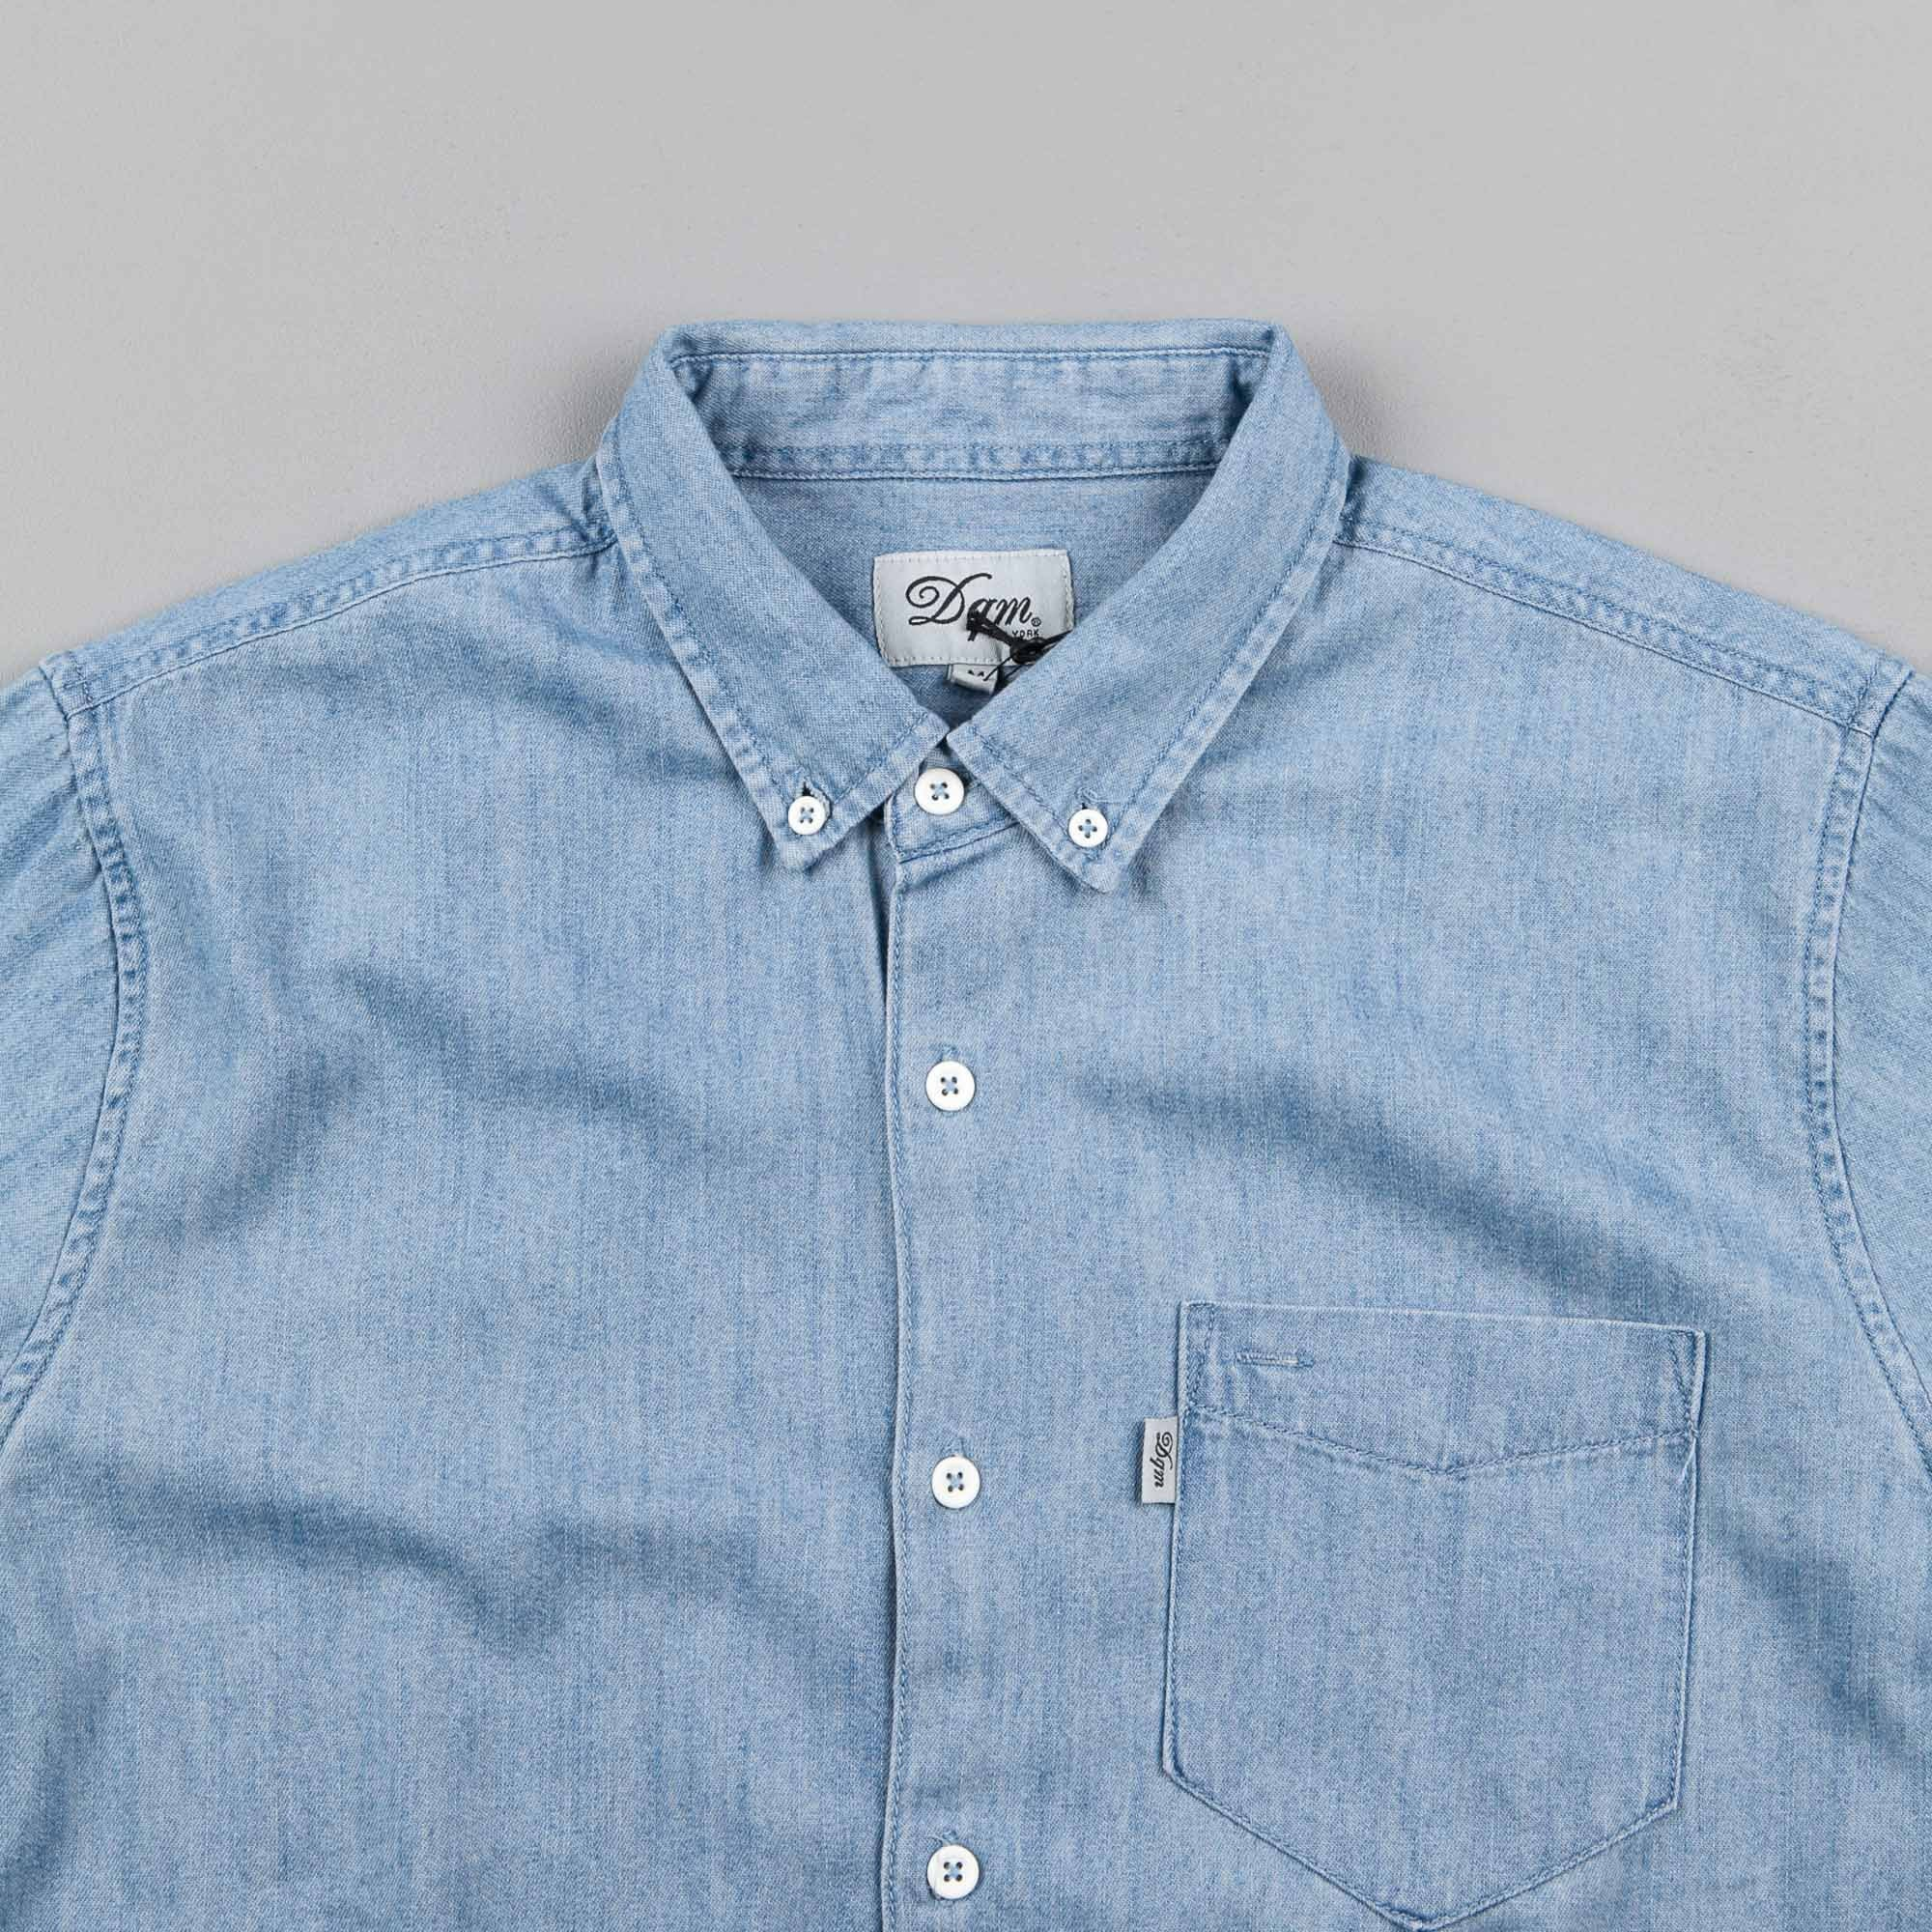 DQM Glaser Chambray Shirt - Light Blue